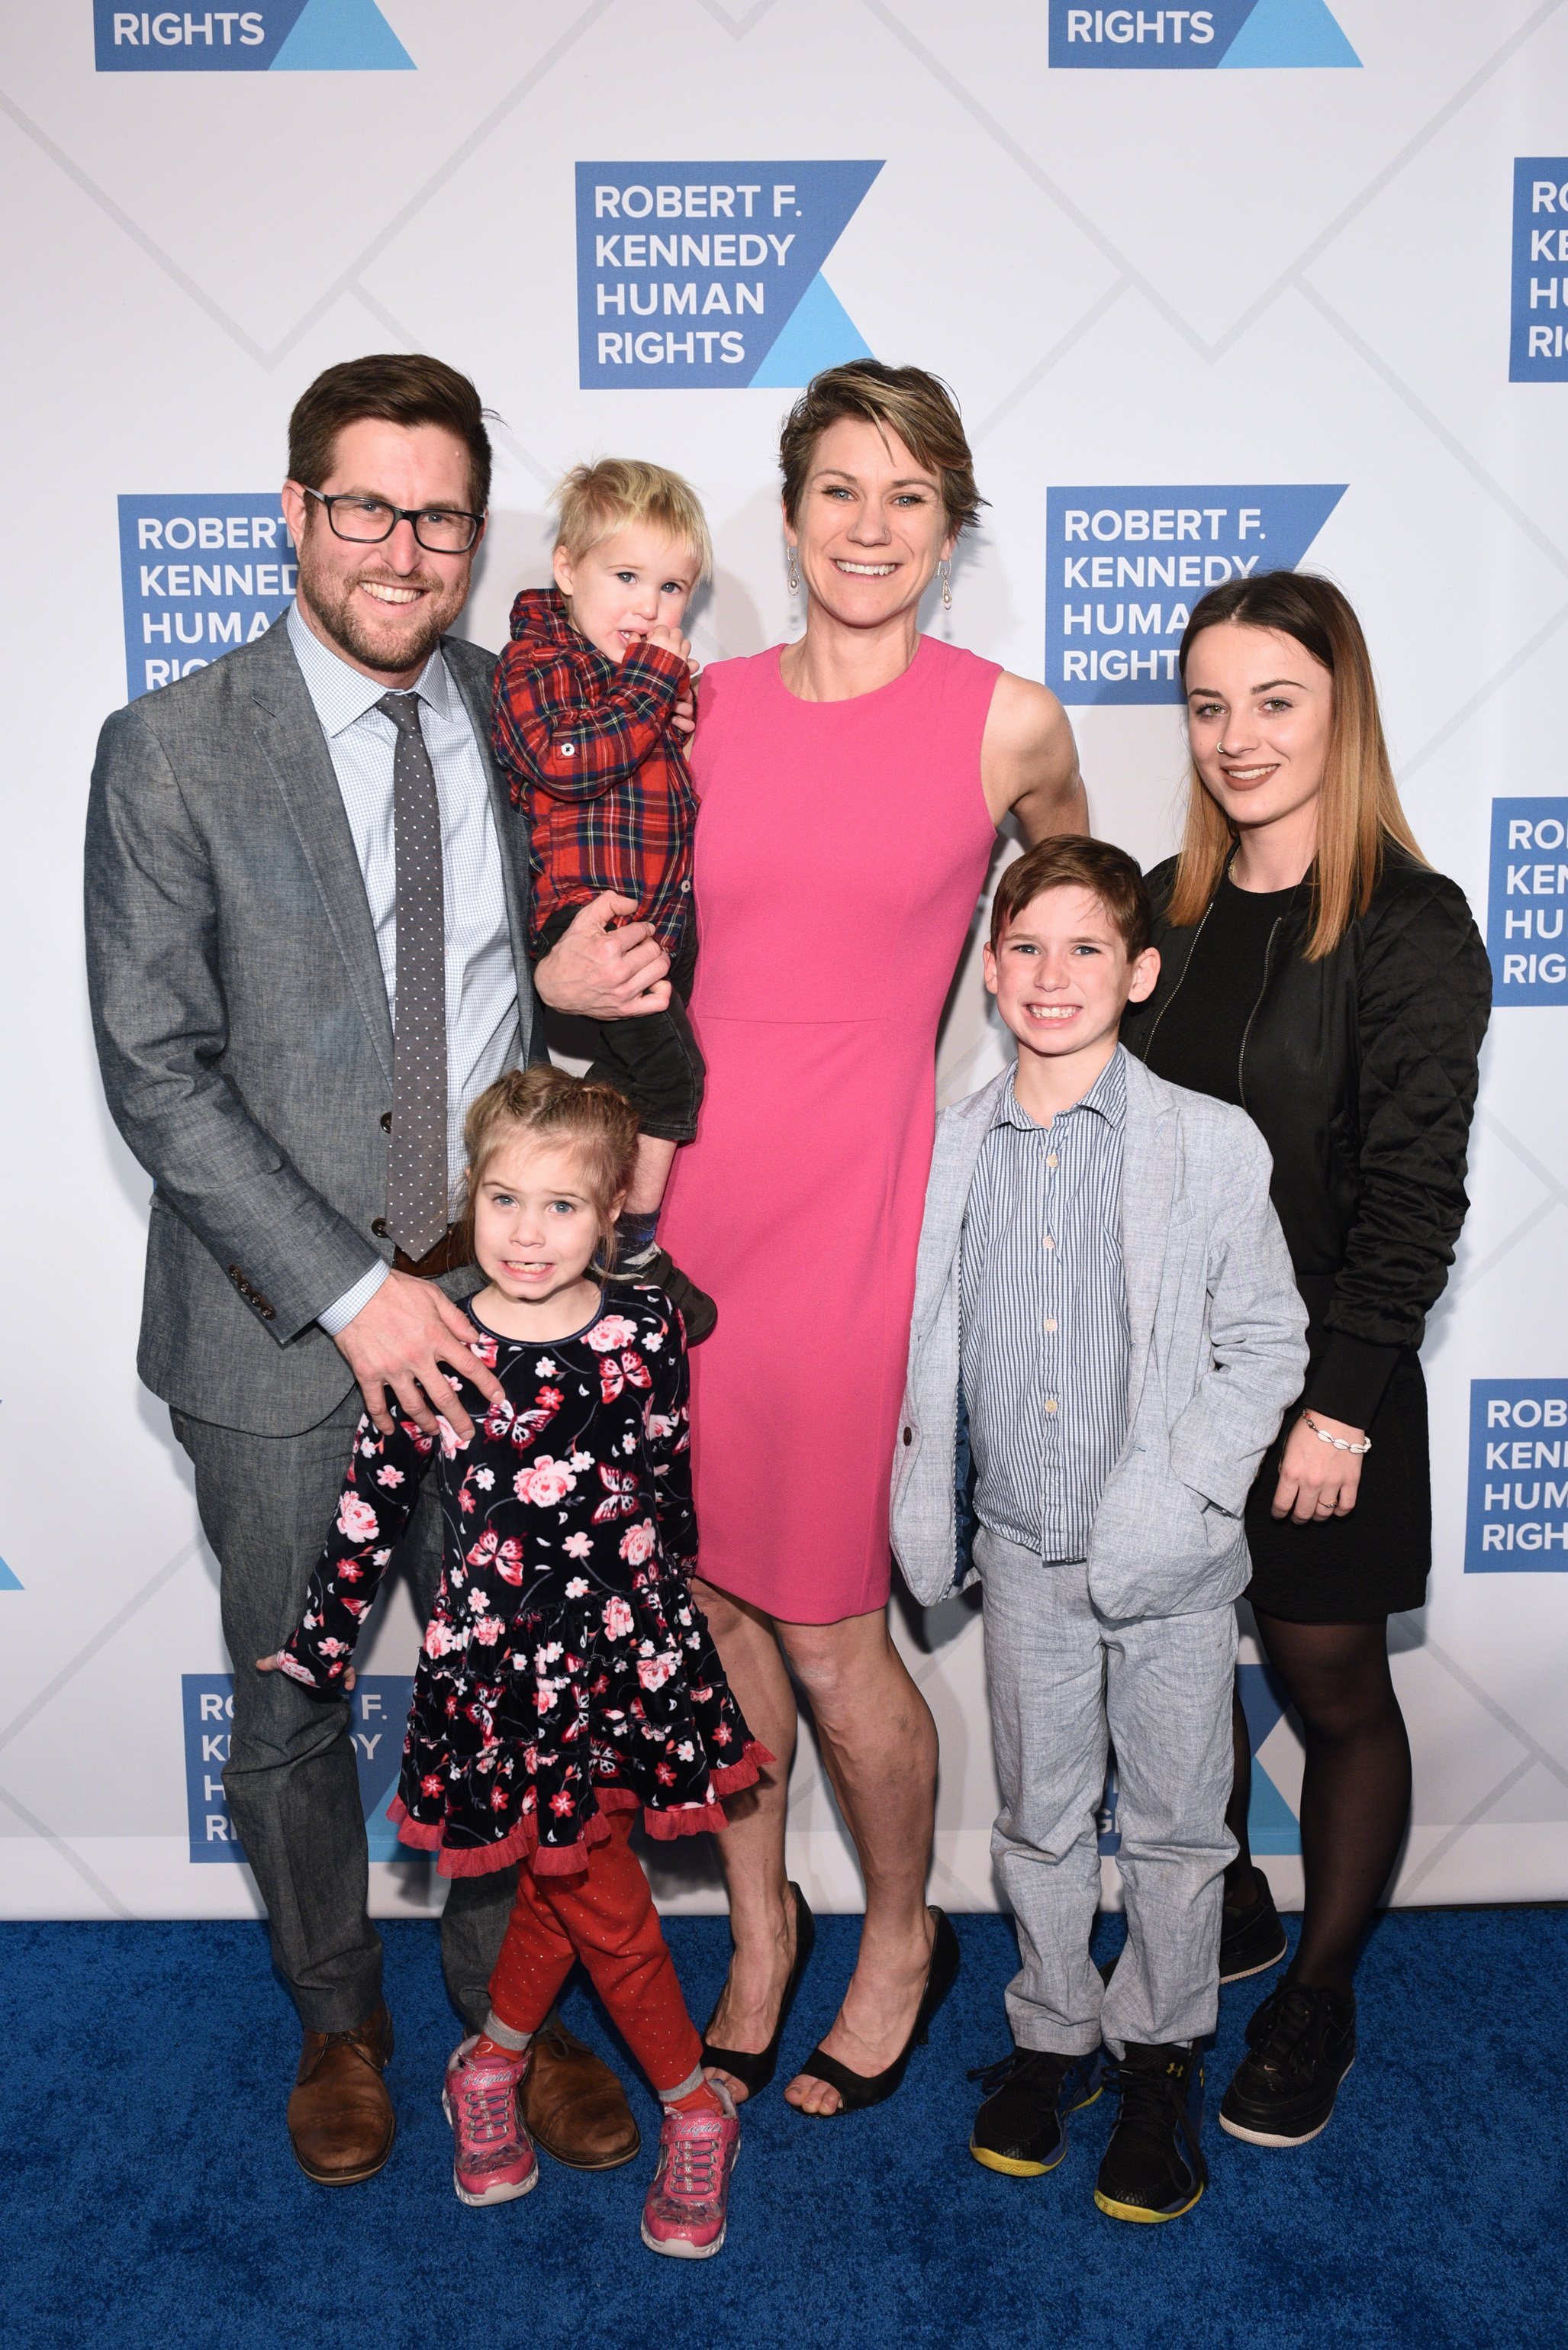 David McKean, Maeve Kennedy Townsend Mckean and family attend the Robert F. Kennedy Human Rights Hosts 2019 Ripple Of Hope Gala & Auction In NYC on December 12, 2019, in New York City. | Source: Getty Images.